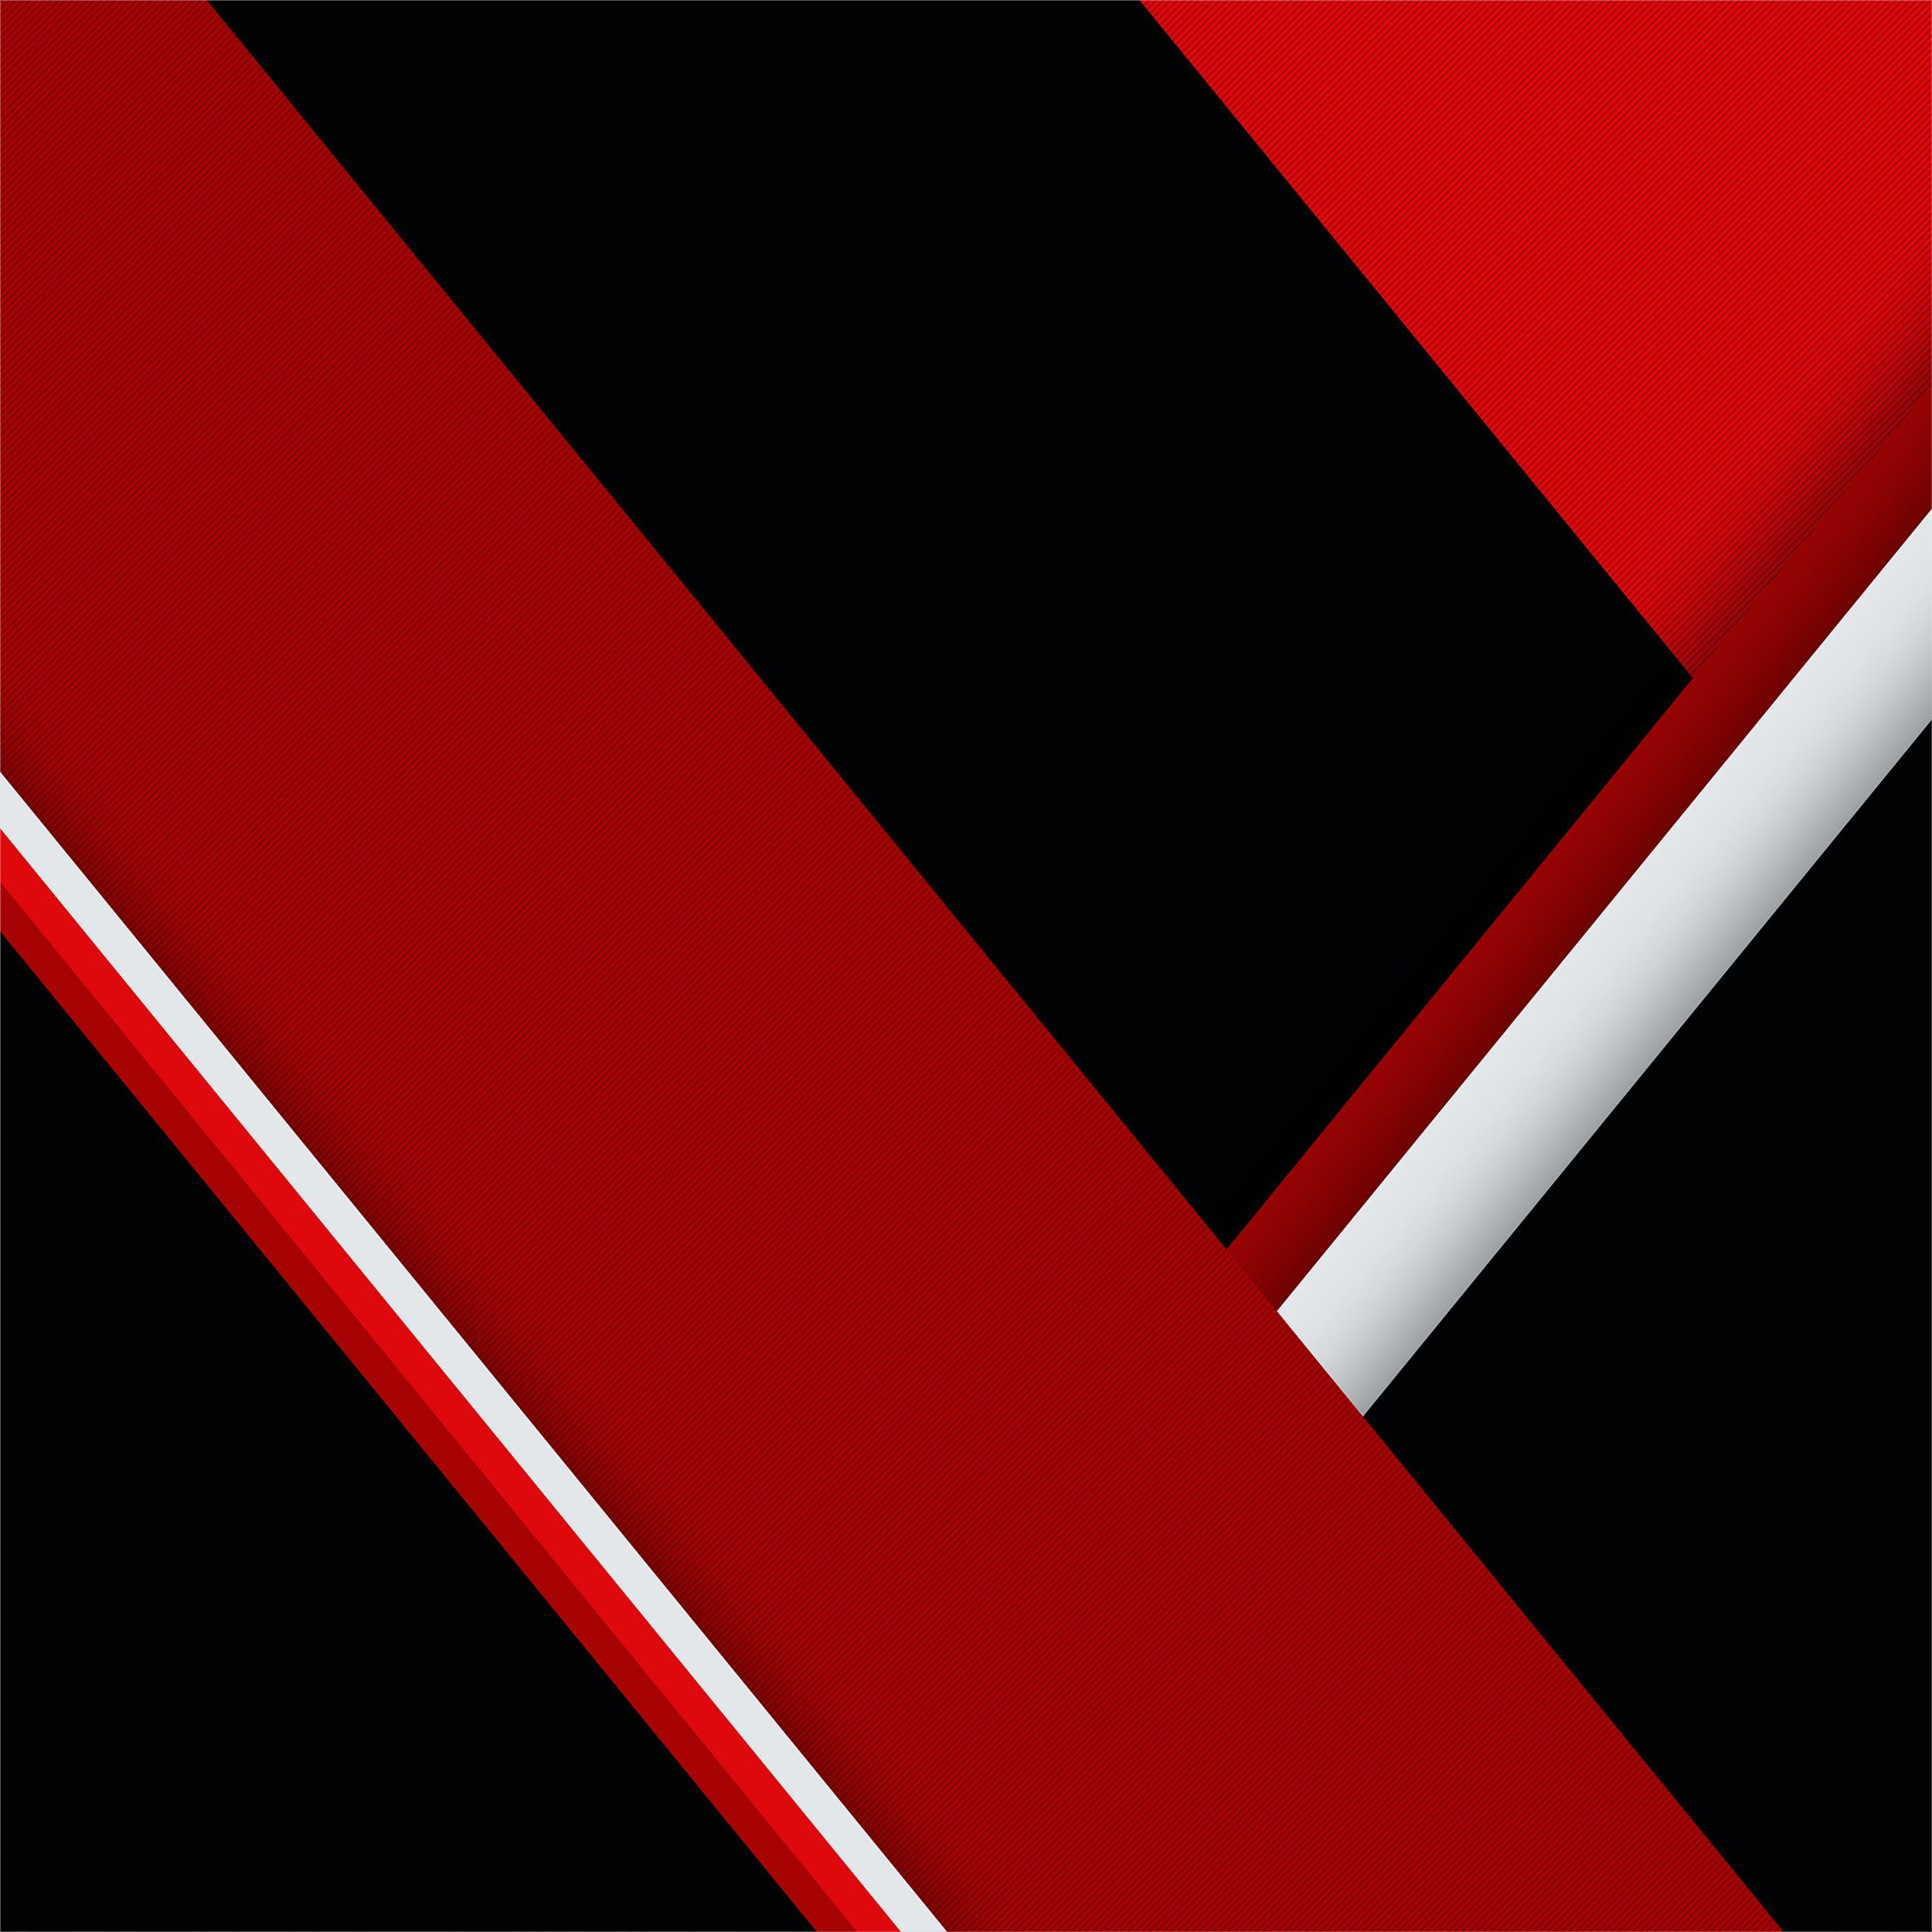 Red Black Texture Shapes Abstract 4k Ipad Pro Wallpapers Free Download